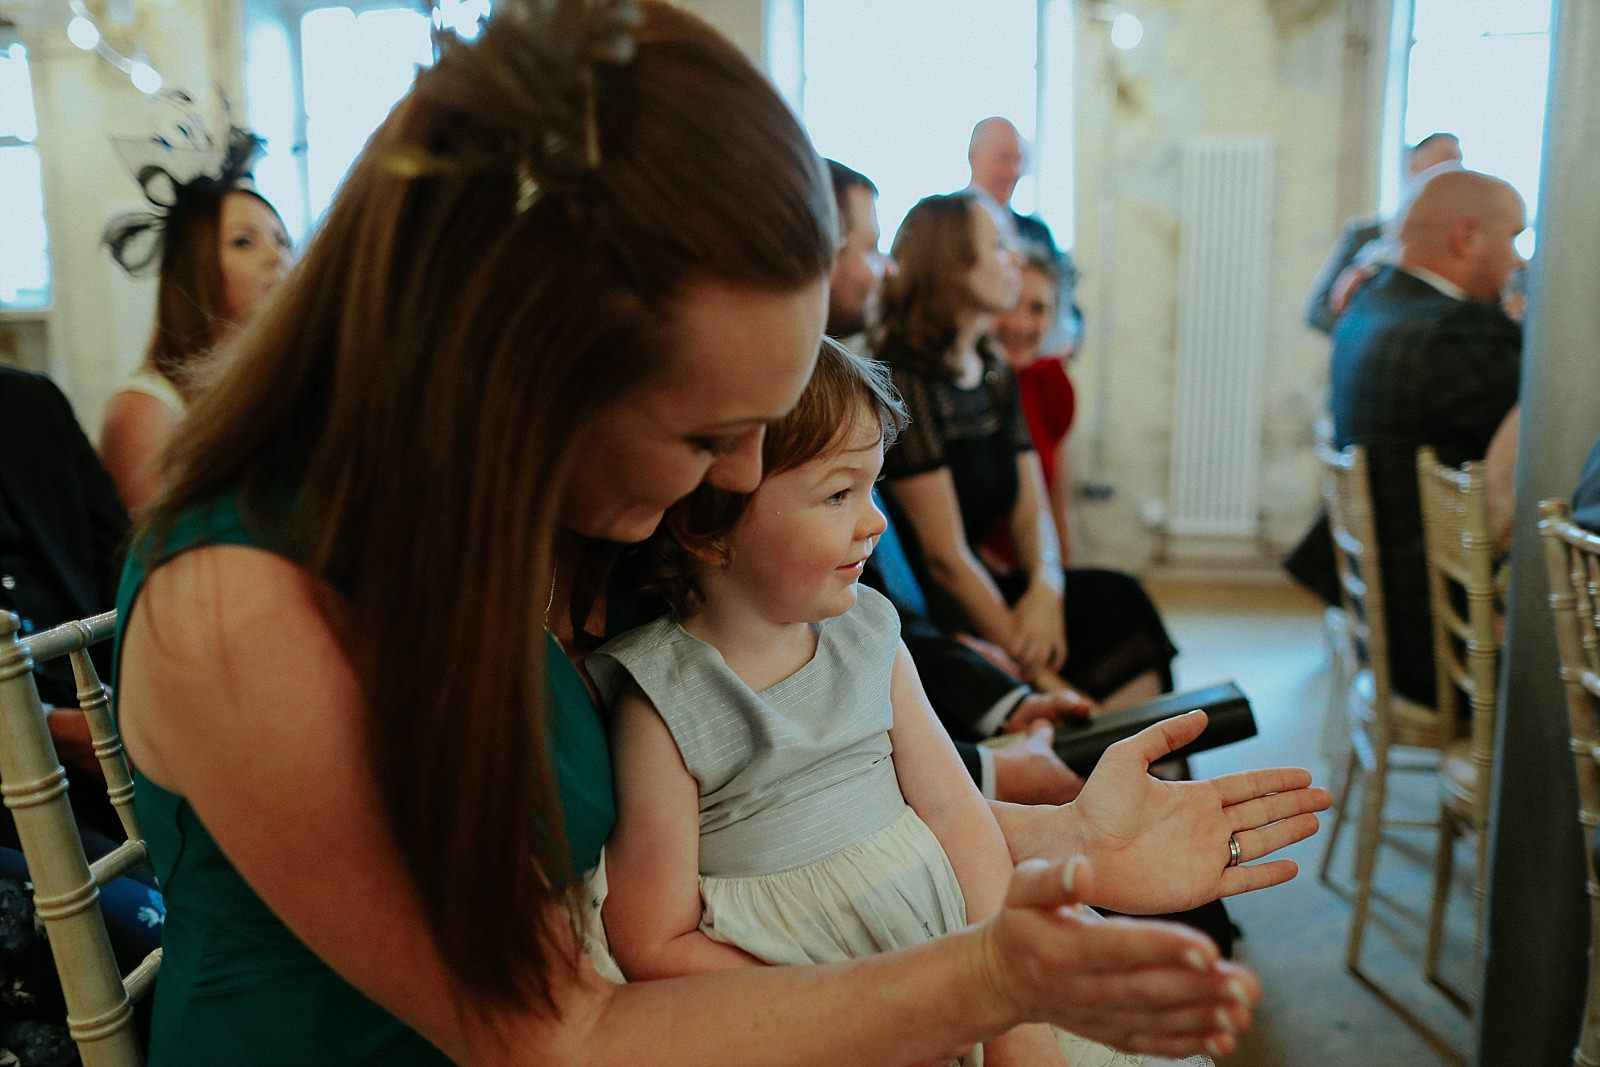 guest claps with her daughter at a wedding